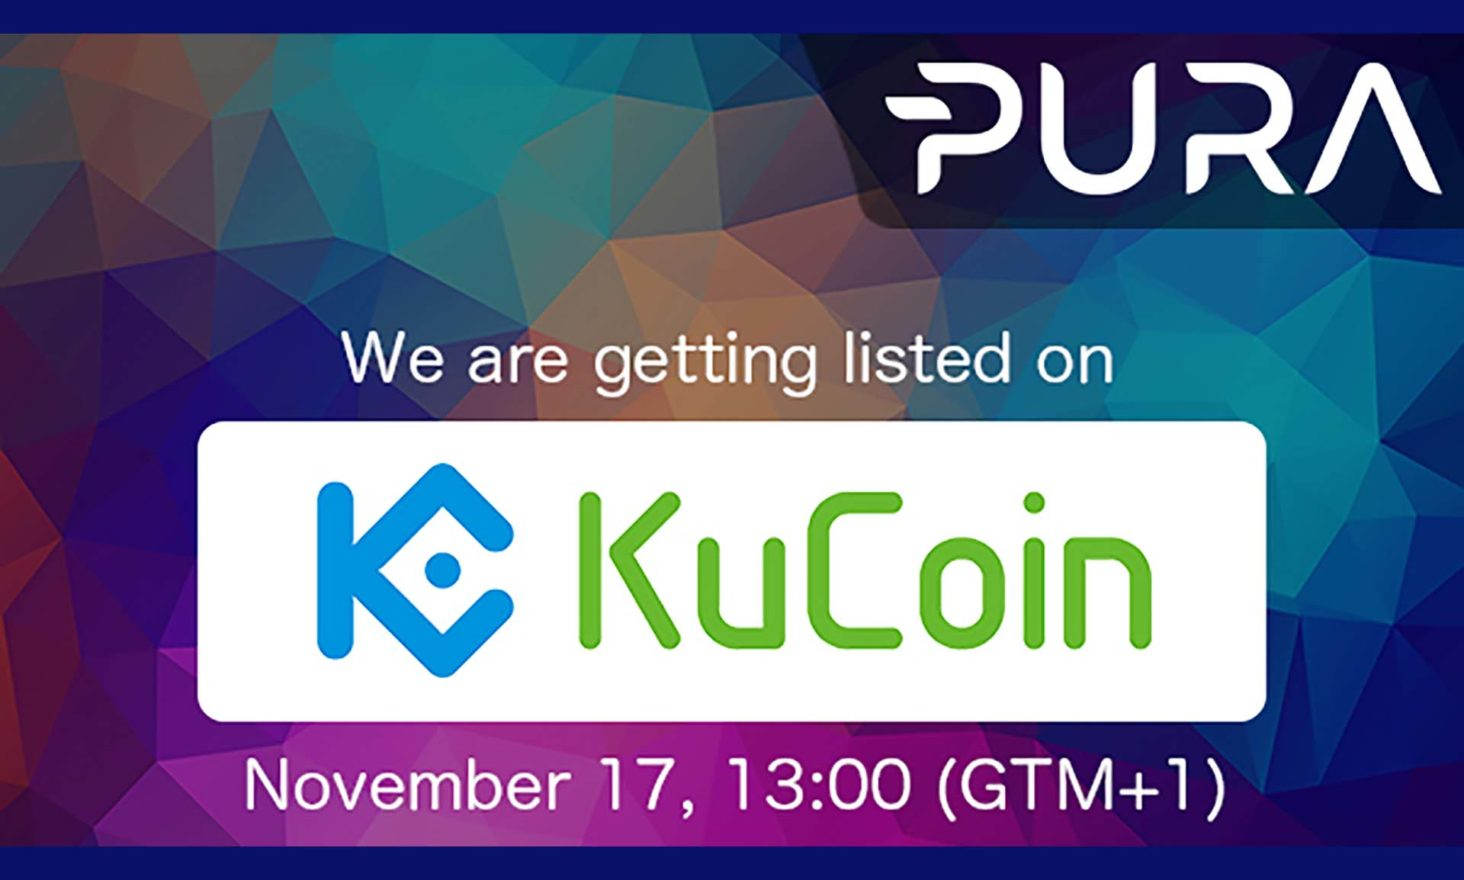 PURA to be listed on KuCoin: Trading Starts On Friday November 17